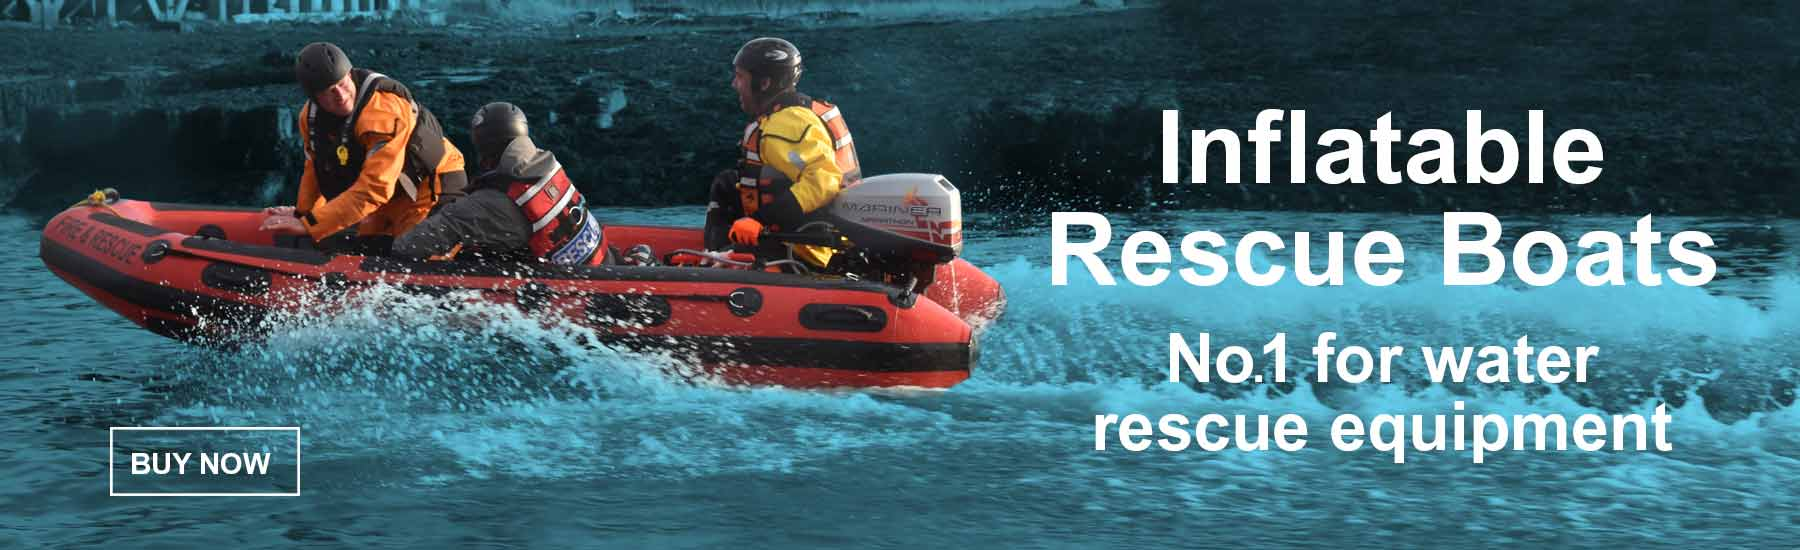 Inflatable Rescue Boats Number 1 for rescue equipment